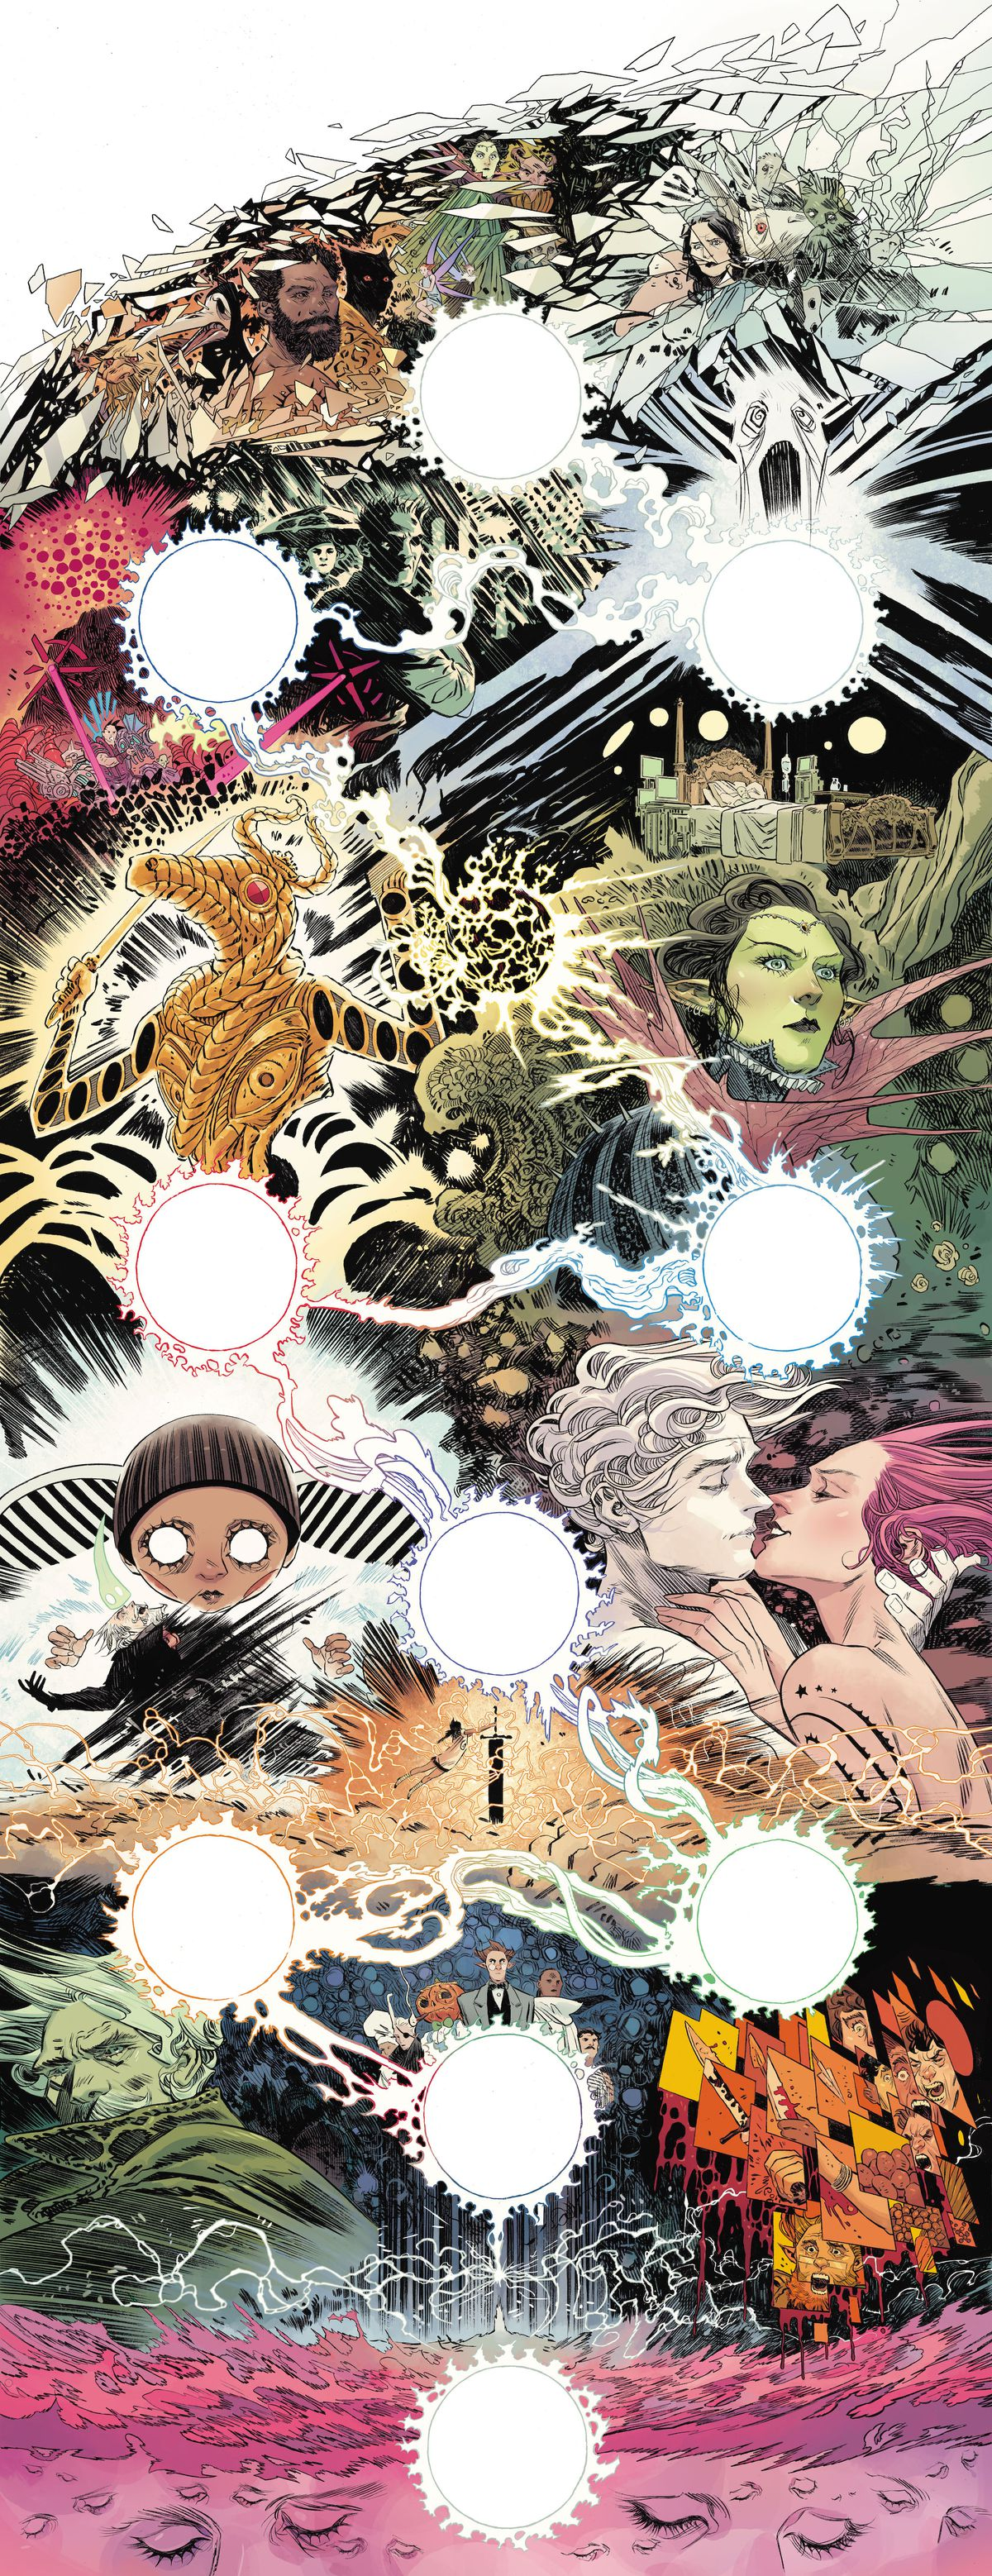 The unlettered double vertical gatefold pages of The Dreaming #20, DC Comics (2020).